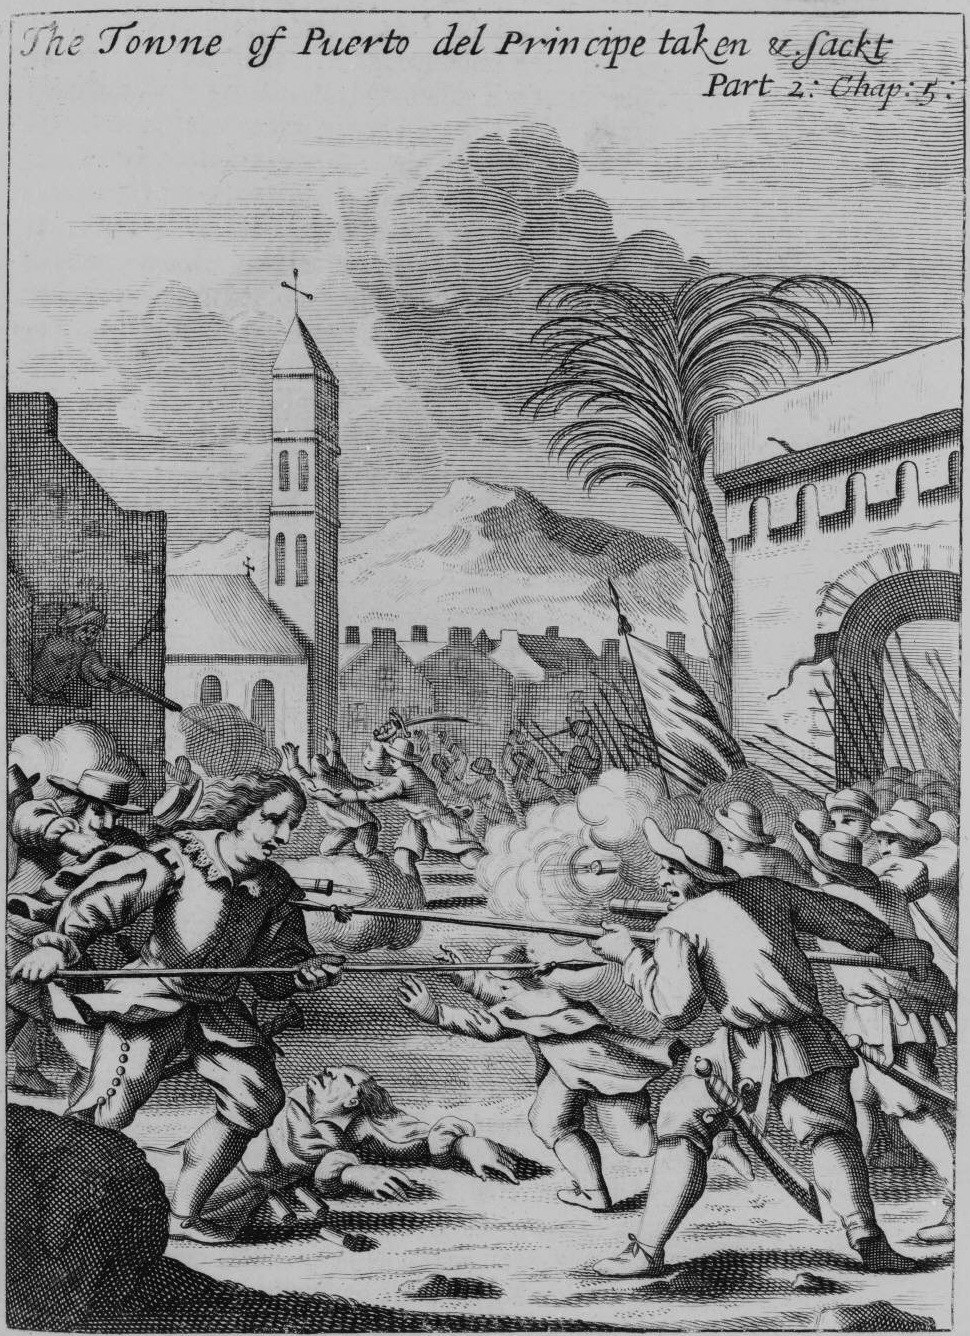 Puerto del Príncipe - being sacked in 1668 - Project Gutenberg eText 19396